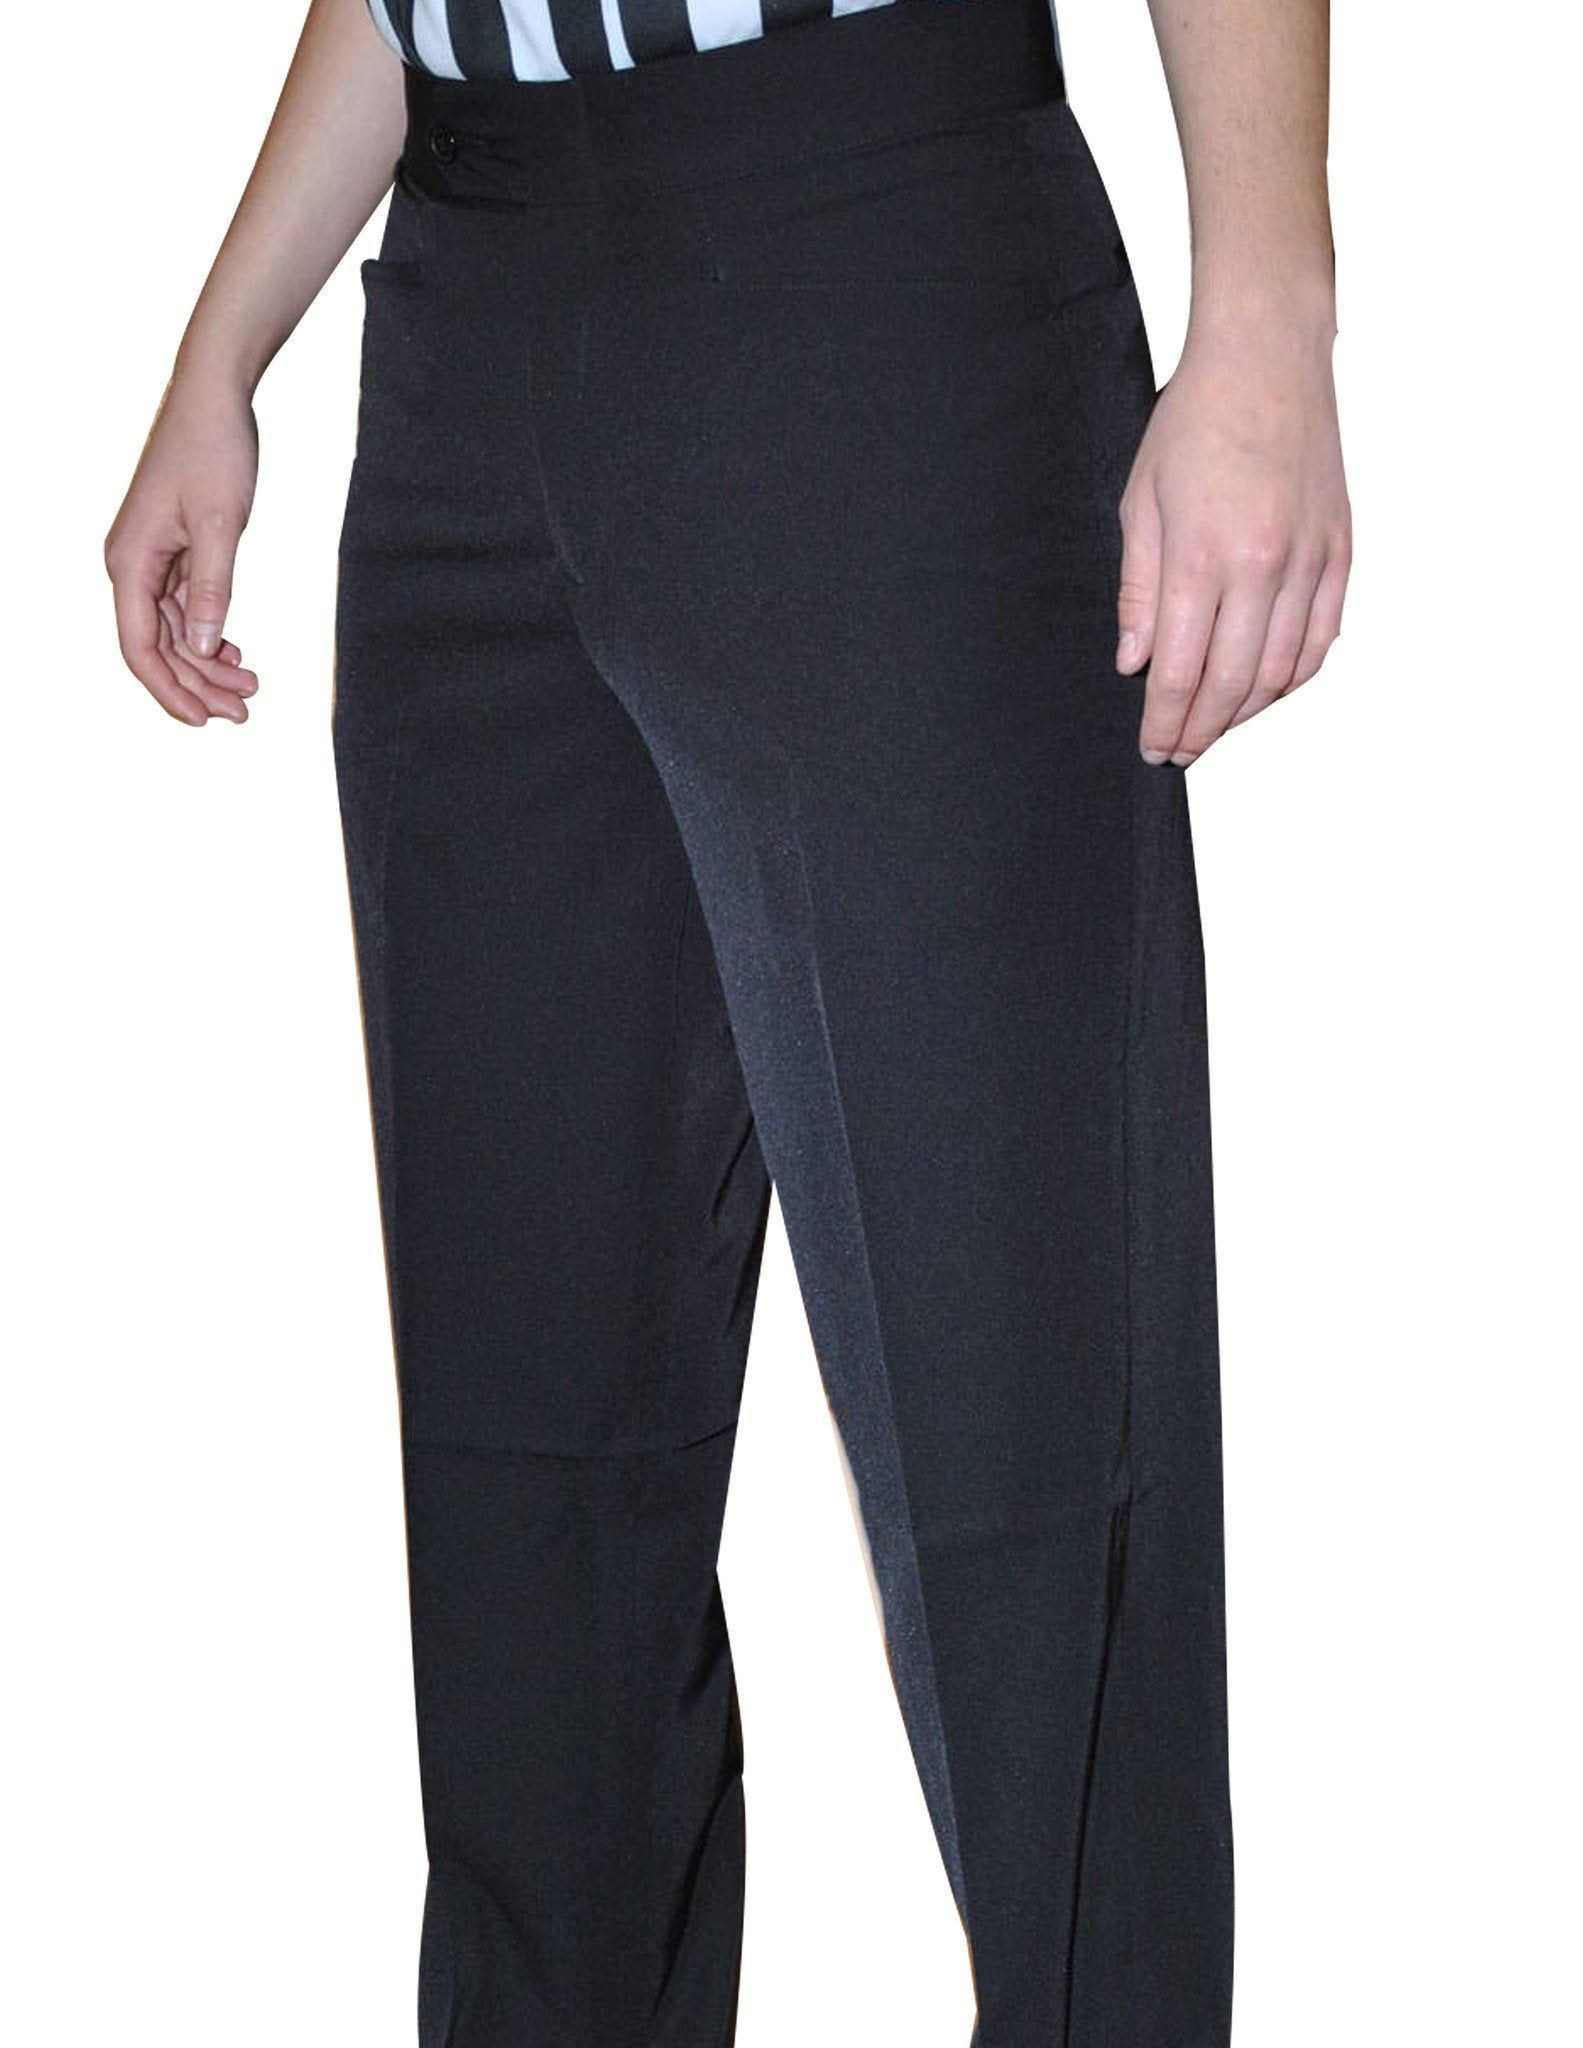 BKS276-Smitty Women's 100% Polyester Flat Front Pants w/ Western Cut Pockets